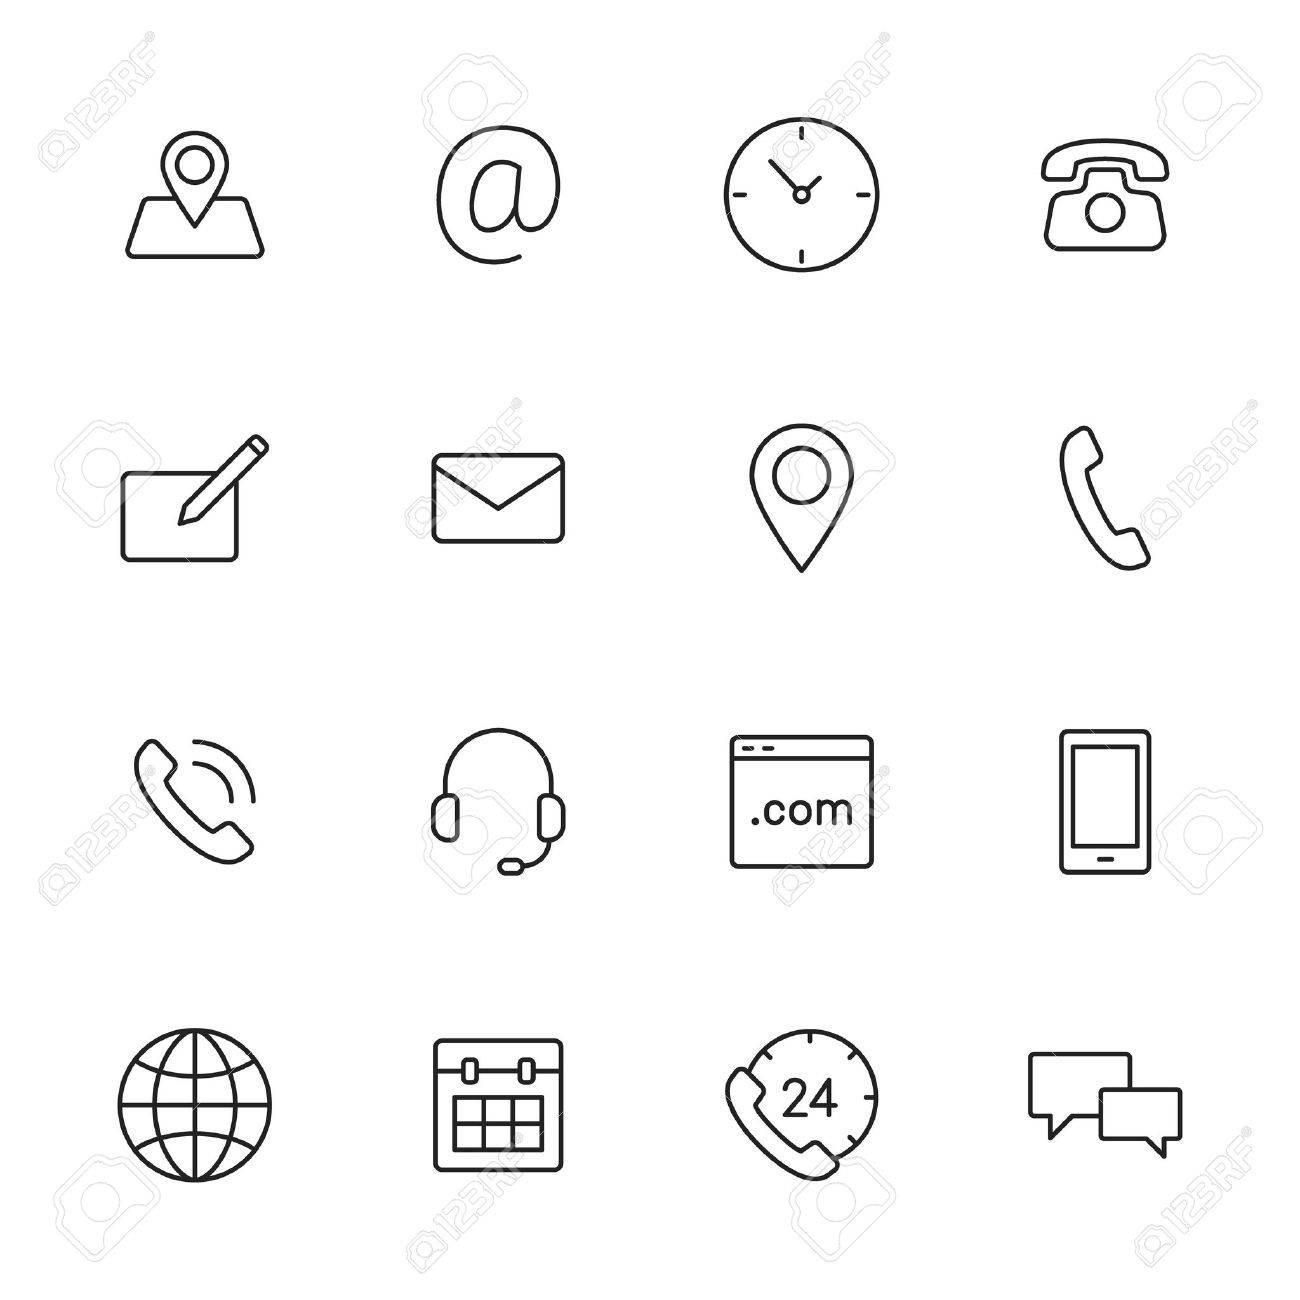 Contact us thin line icons for web and mobile app. - 43675865